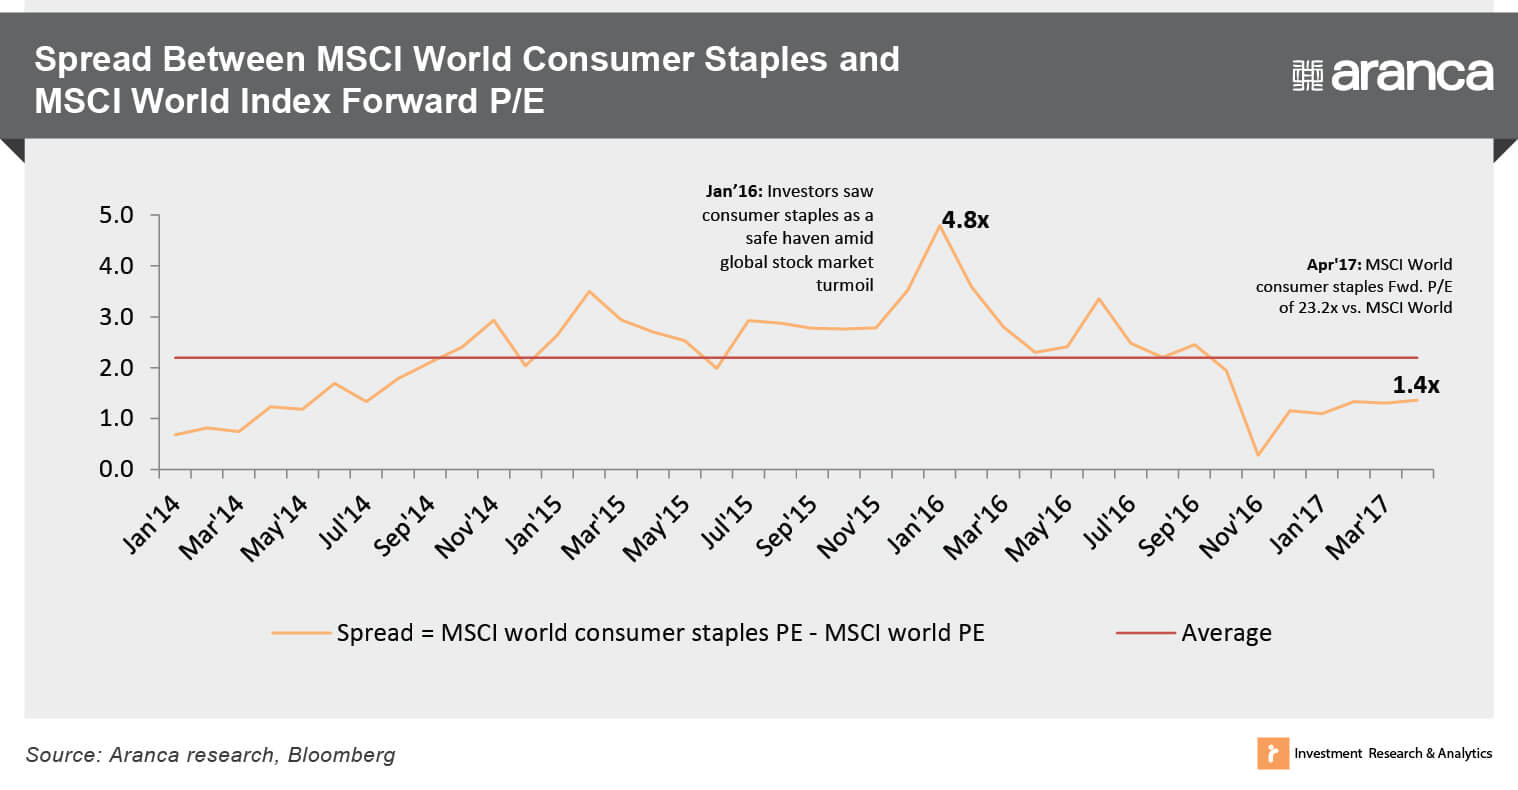 MSCI World Consumer Staples Index and MSCI World Index Forward P/E